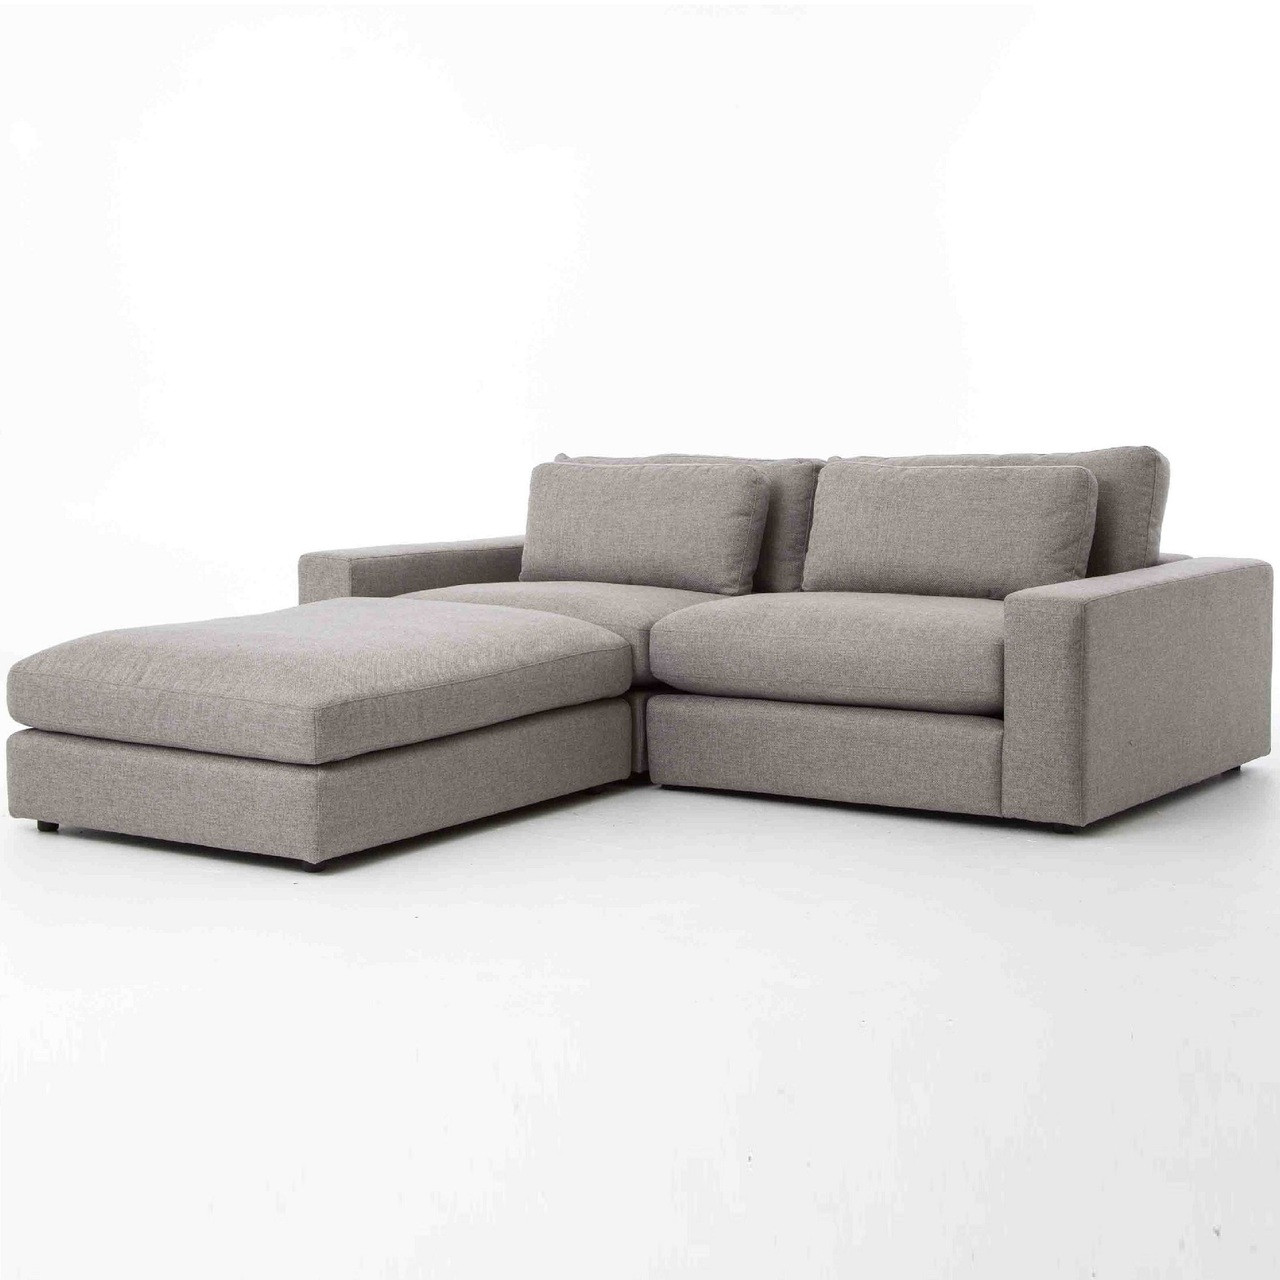 Astounding Bloor Gray Contemporary 3 Piece Small Sectional Sofa Machost Co Dining Chair Design Ideas Machostcouk